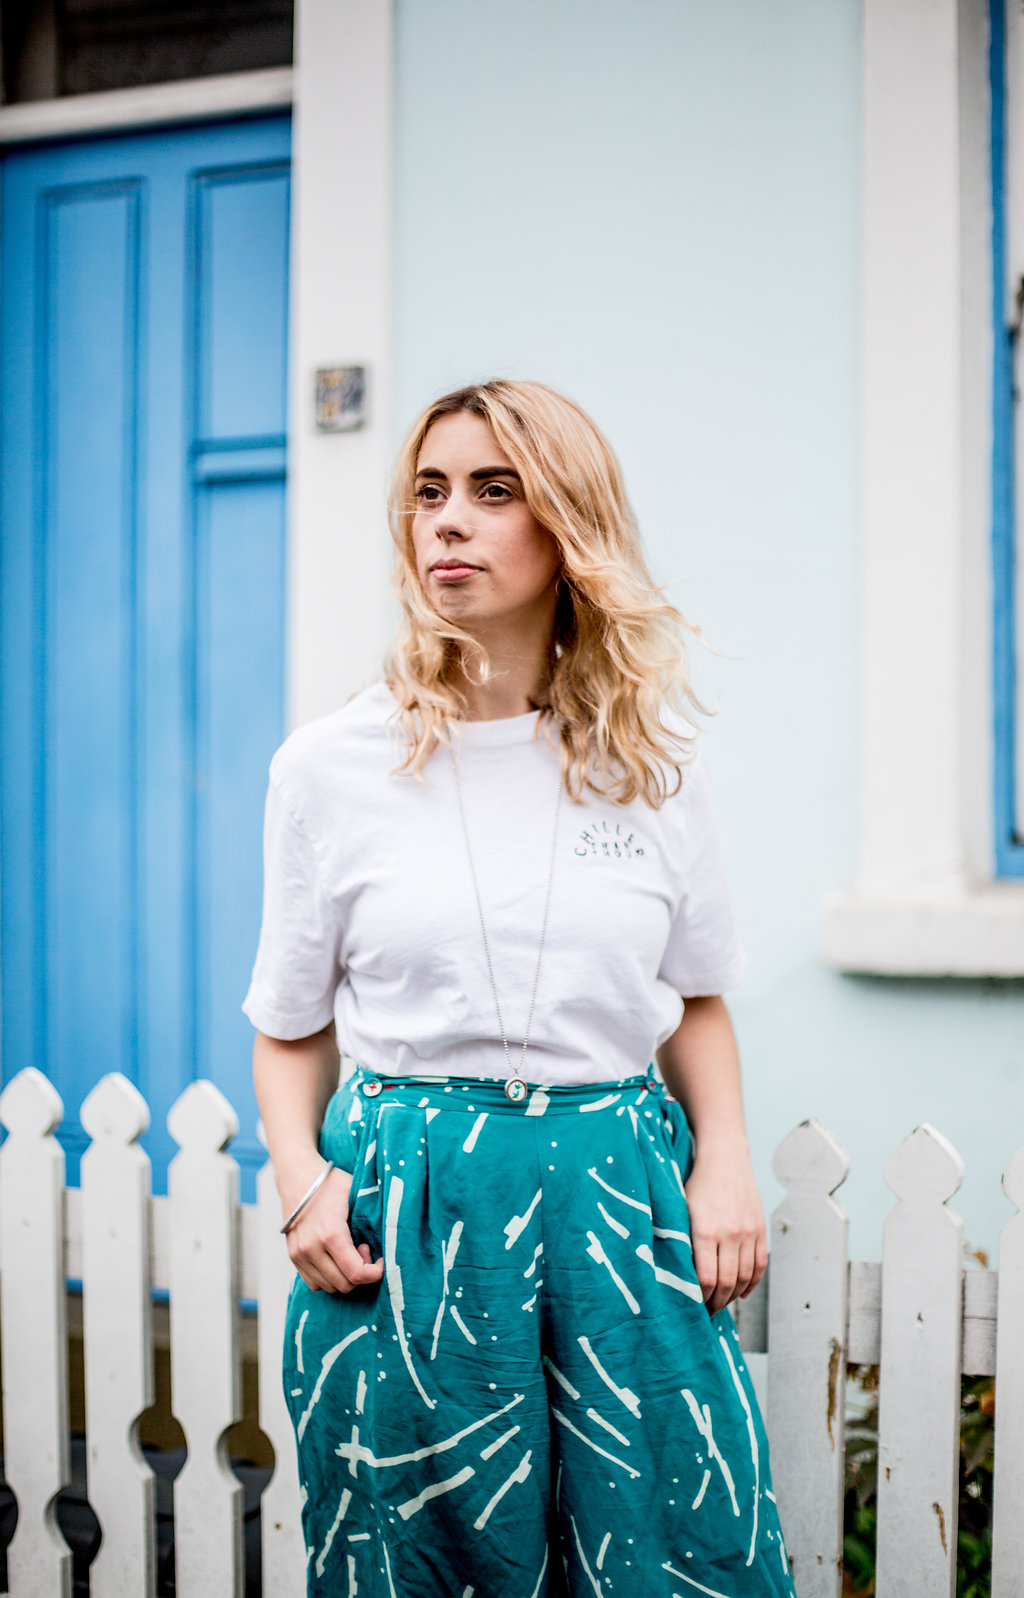 Chiller than thou t-shirt  // A Week Of Vibrant & Global Outfits With Francesca Willow From Ethical Unicorn on The Good Trade